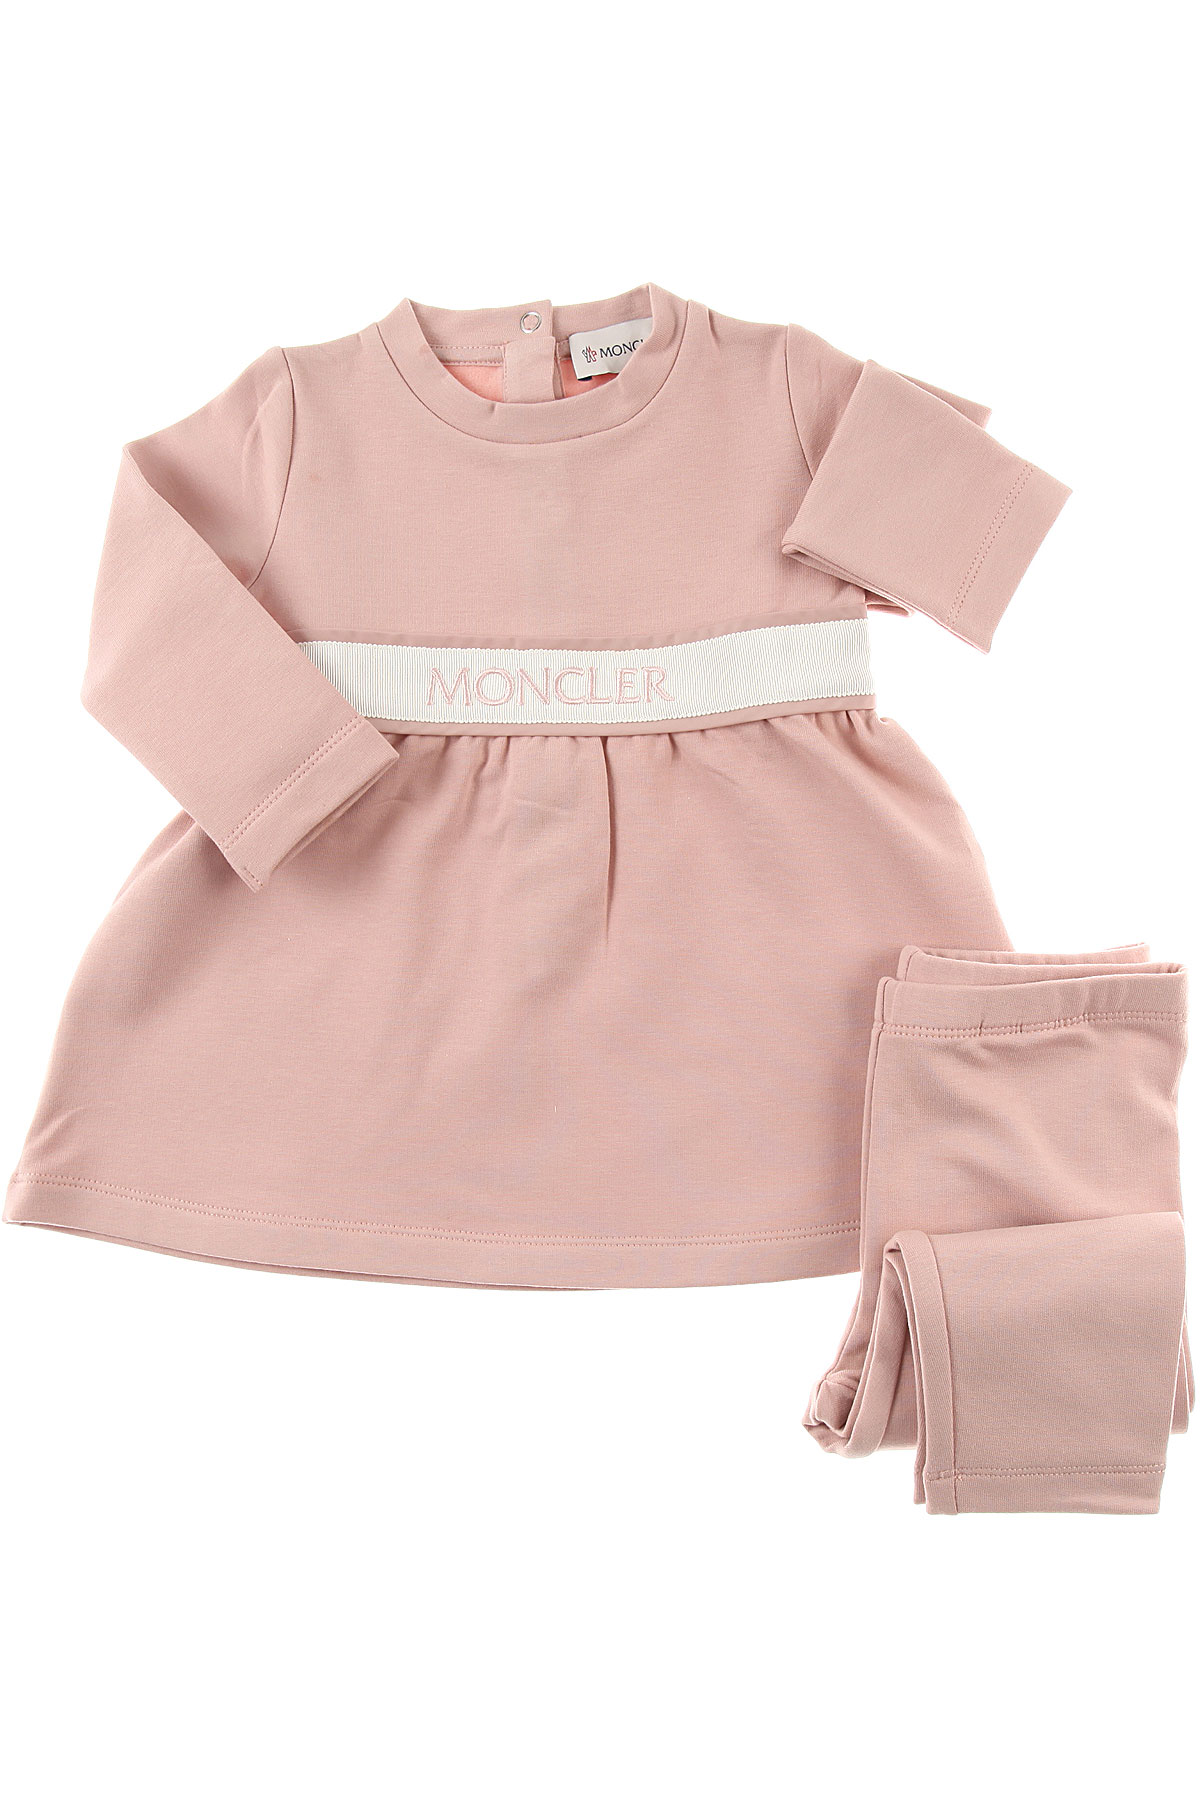 Image of Moncler Baby Sets for Girls, Pink, Cotton, 2017, 24M 2Y 3Y 9M